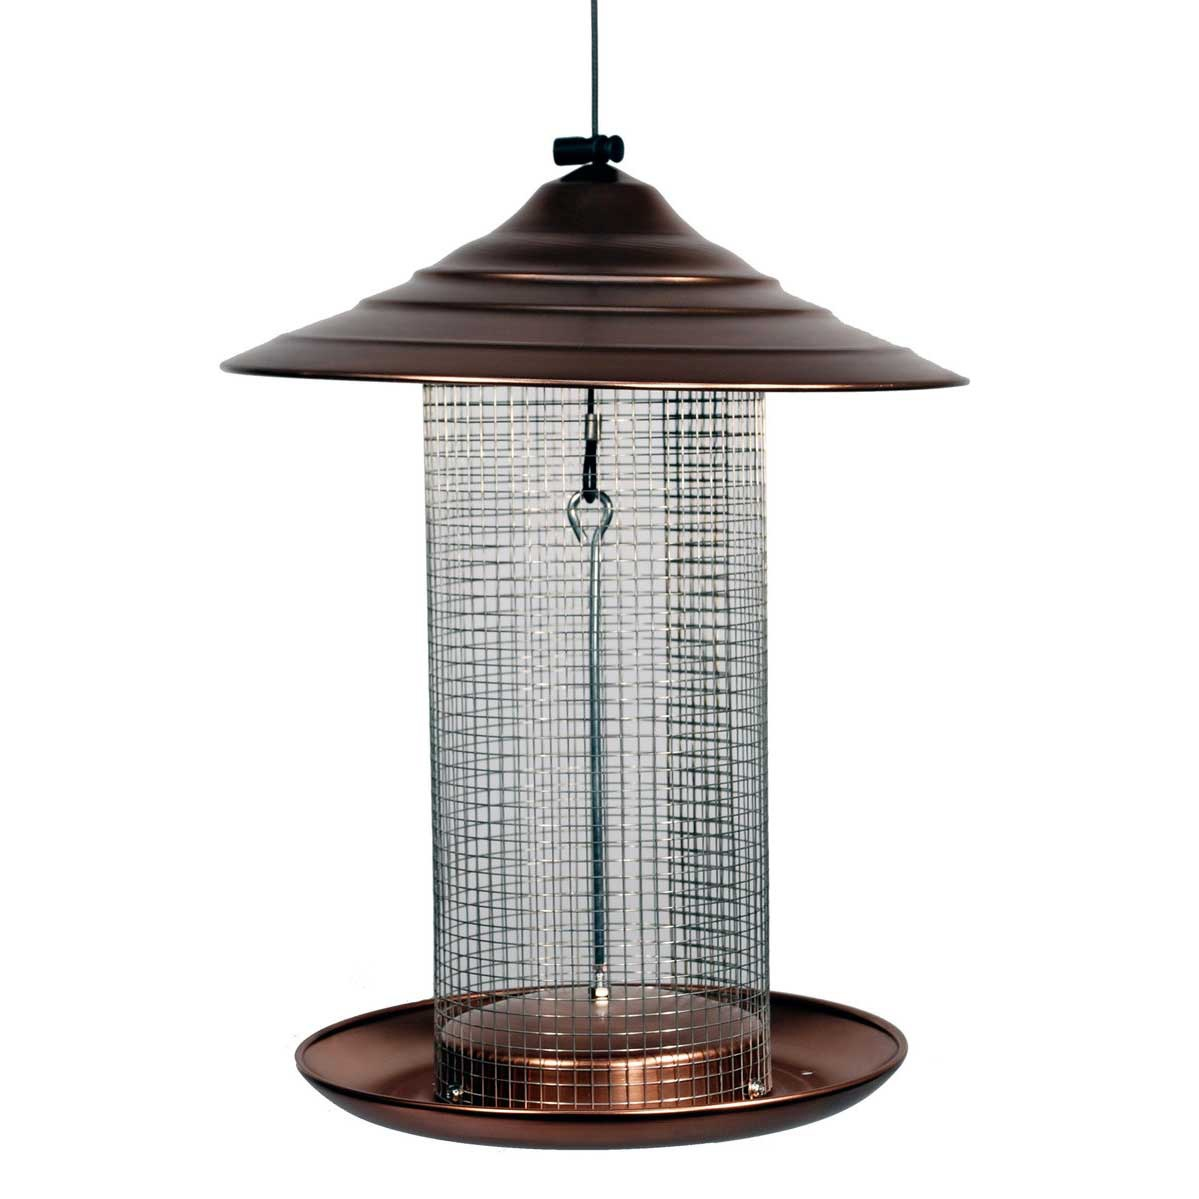 Commercial Outdoor String Lights picture on Brushed_Copper_Sunflower_Screen_Bird_Feeder_Tube_Bird_Feeders  19102  42 with Commercial Outdoor String Lights, Outdoor Lighting ideas 1aeec1869ca456eb389e9e16384b8e3c